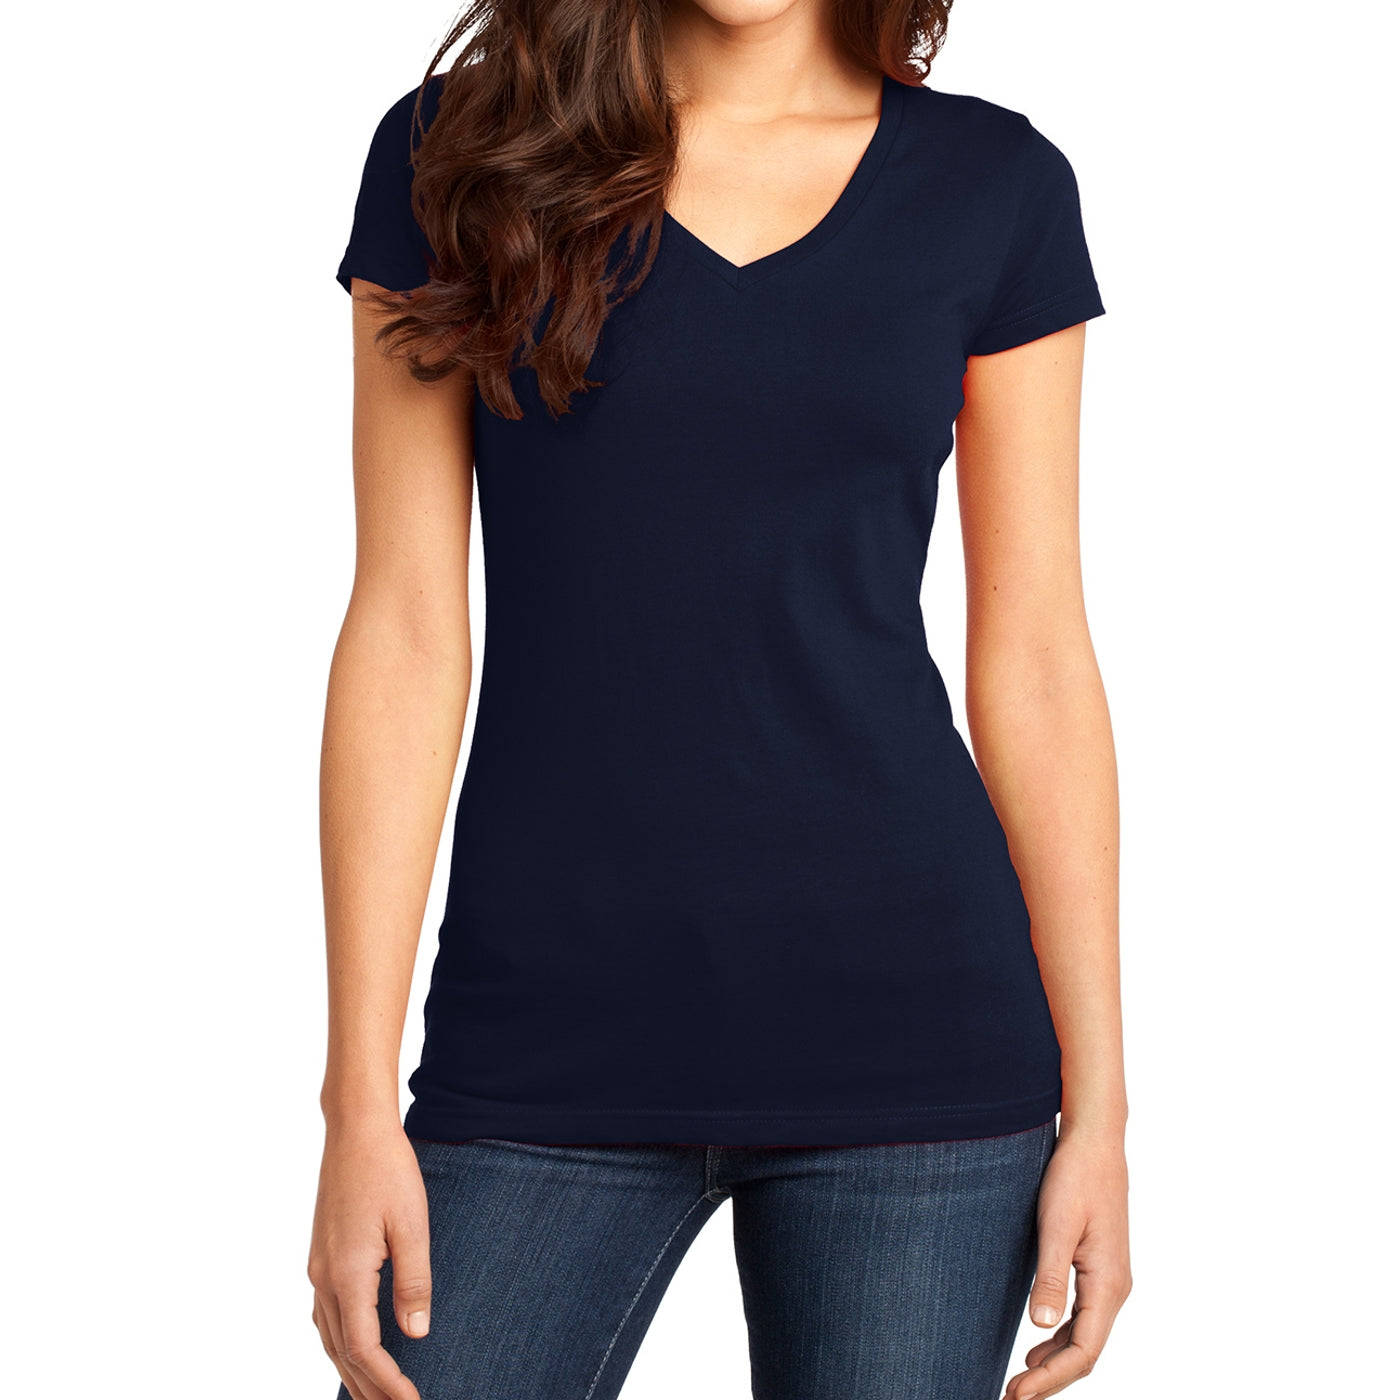 Women's Juniors Very Important Tee V-Neck - New Navy